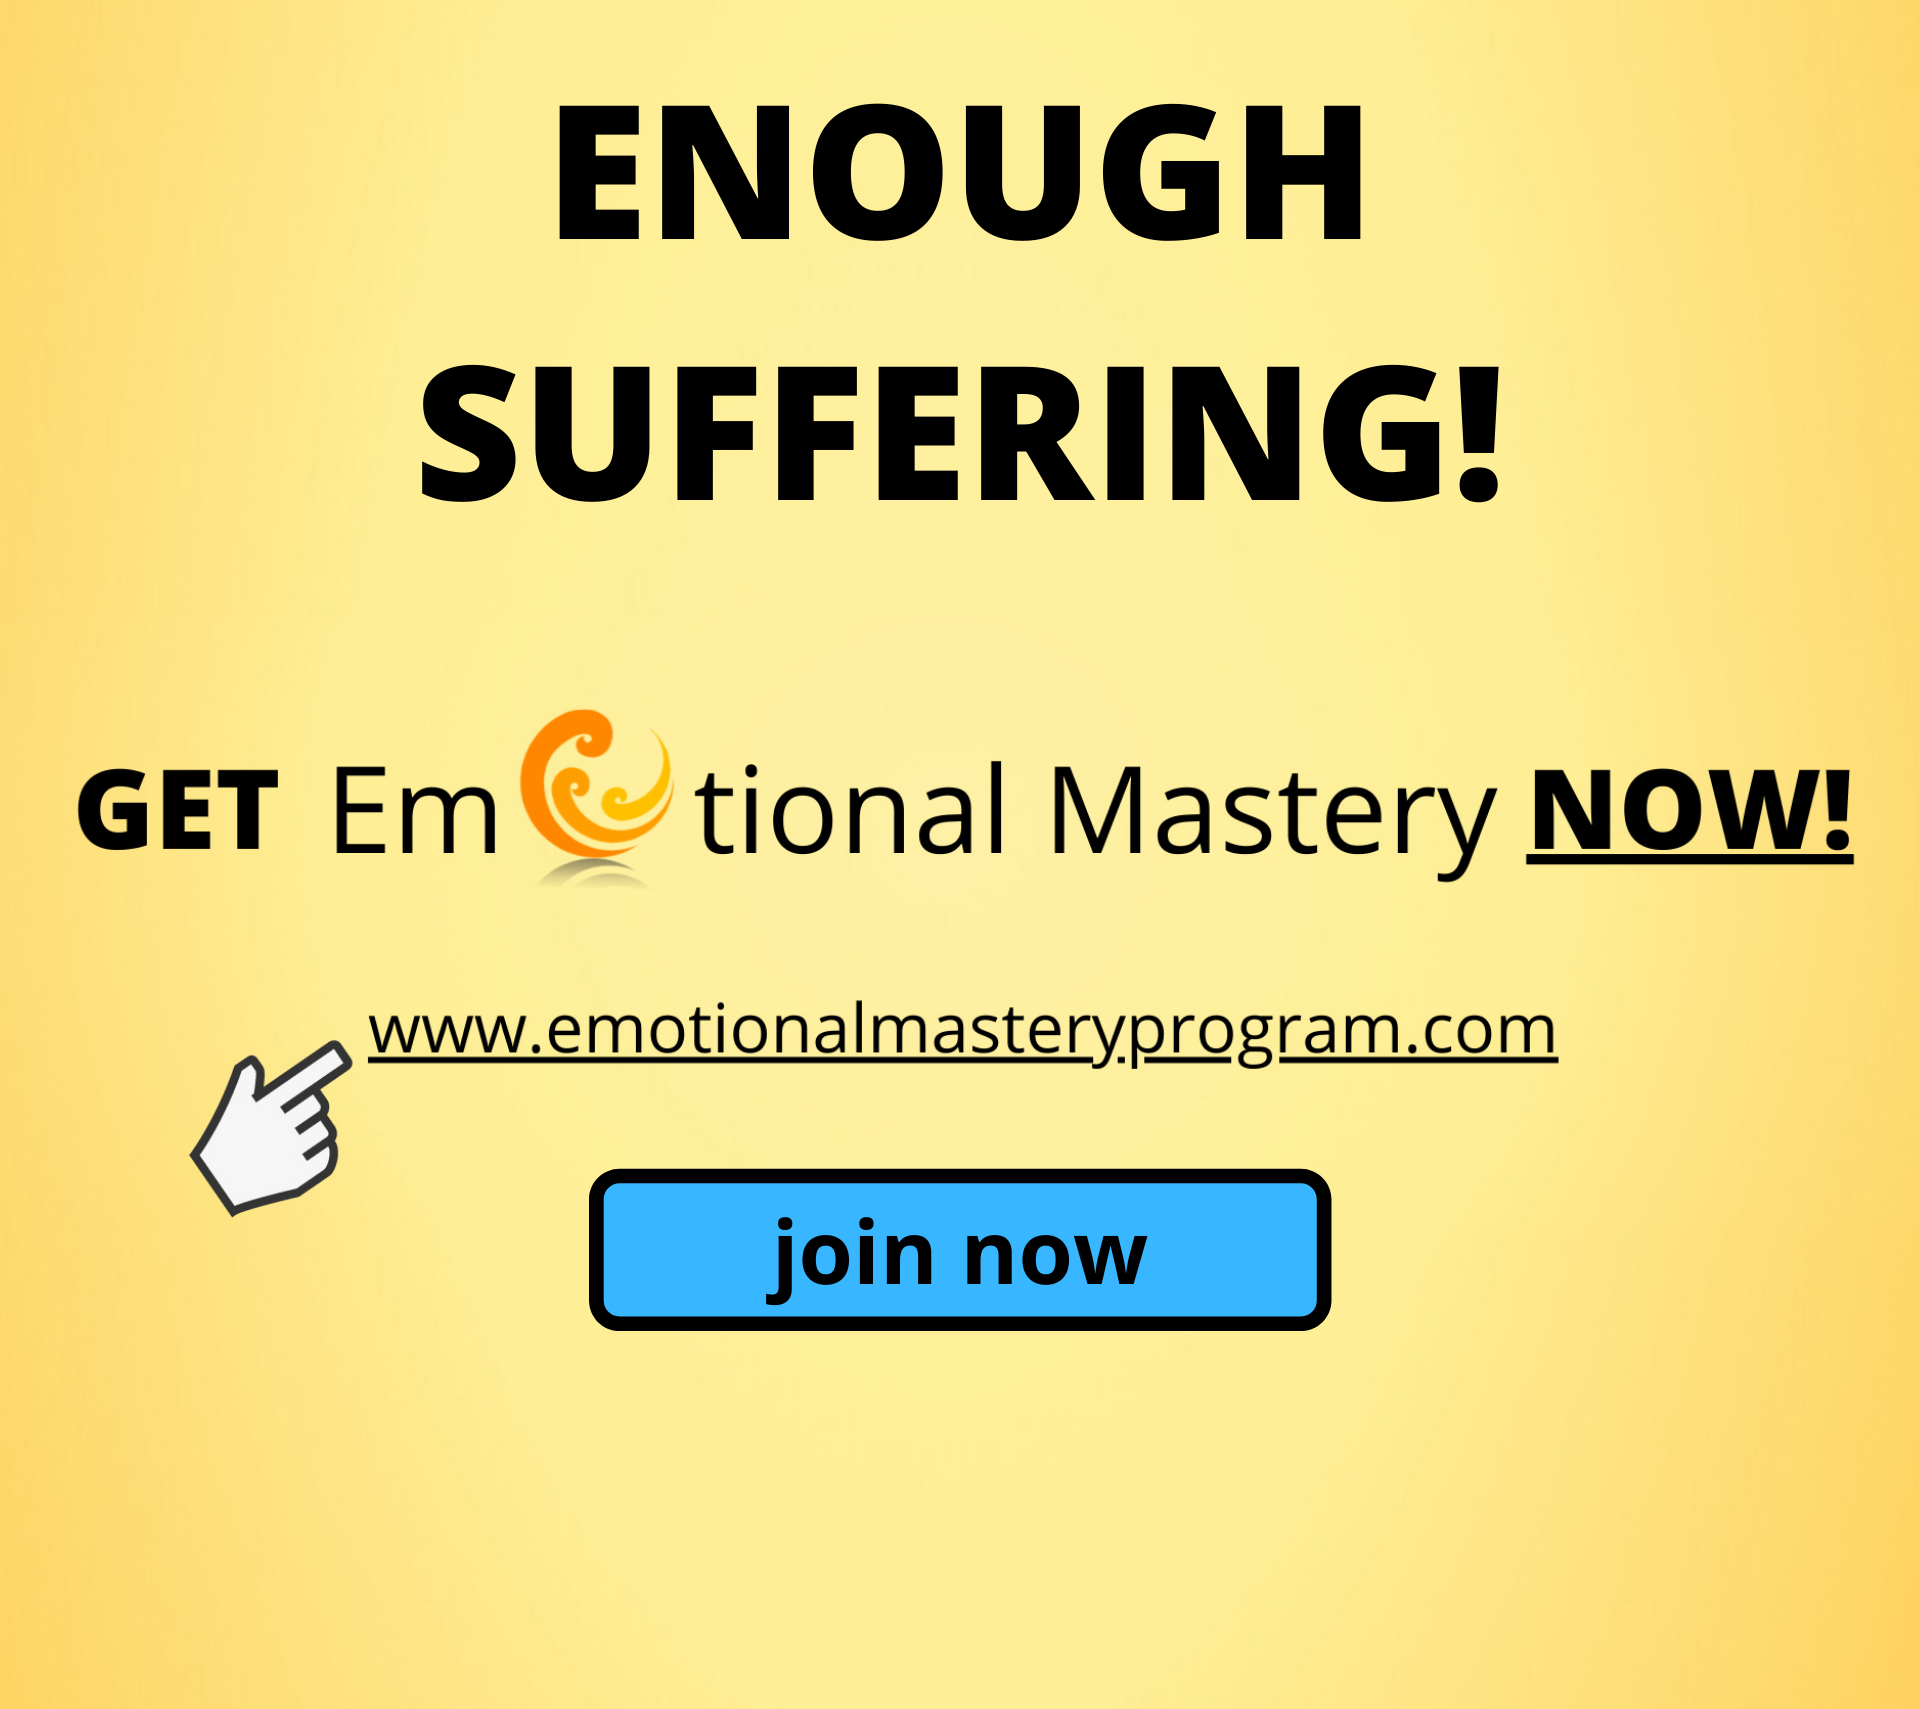 Emotional Mastery Website Ad